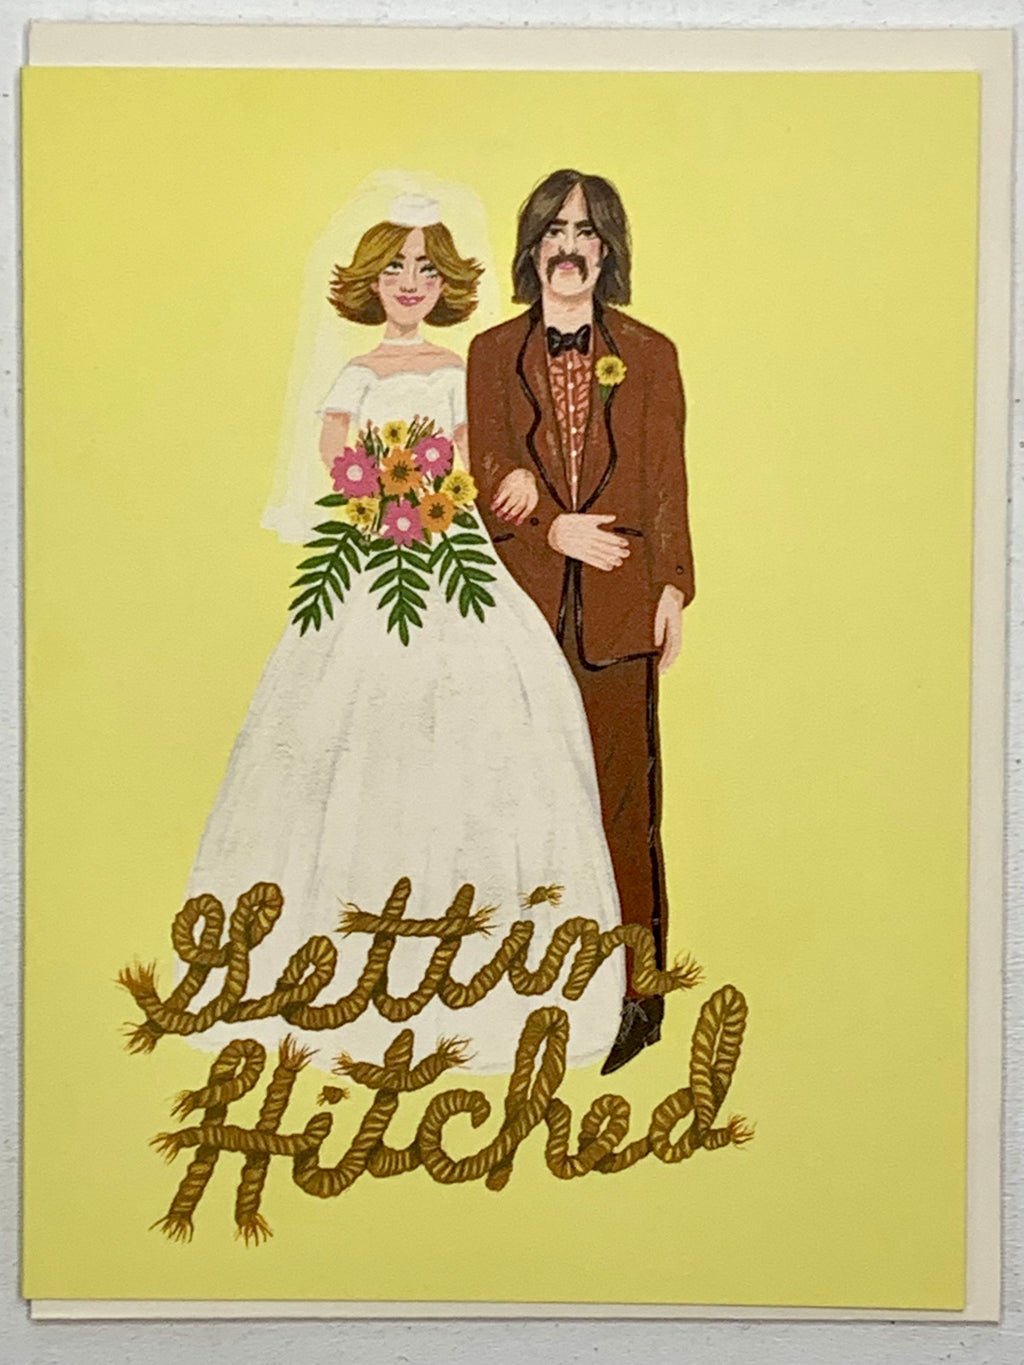 Gettin' Hitched Card